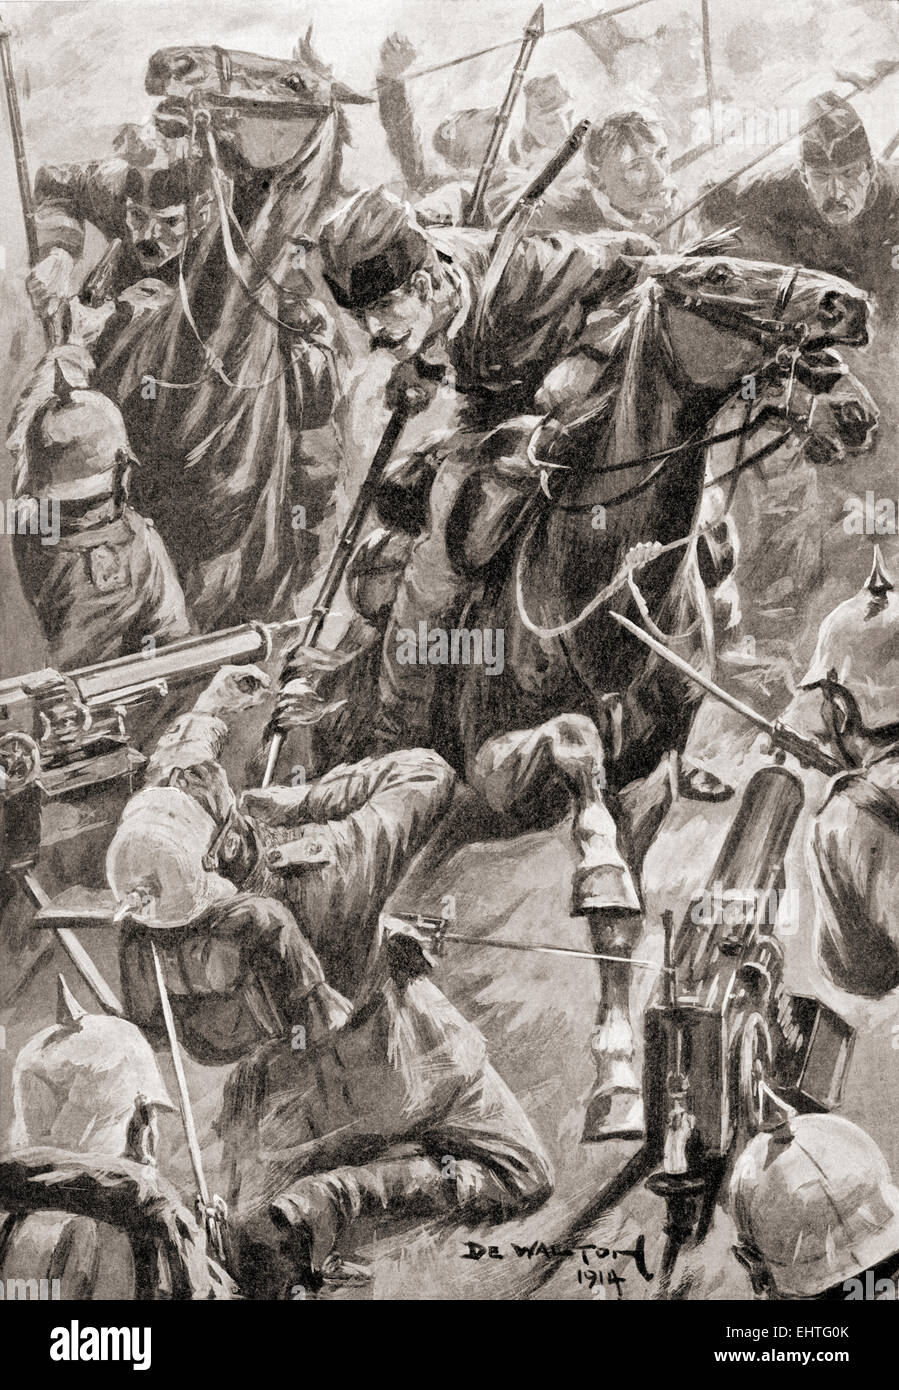 The charge of the Belgian lancers at The Battle of Haelen or Halen, also known as the Battle of the Silver Helmets, - Stock Image